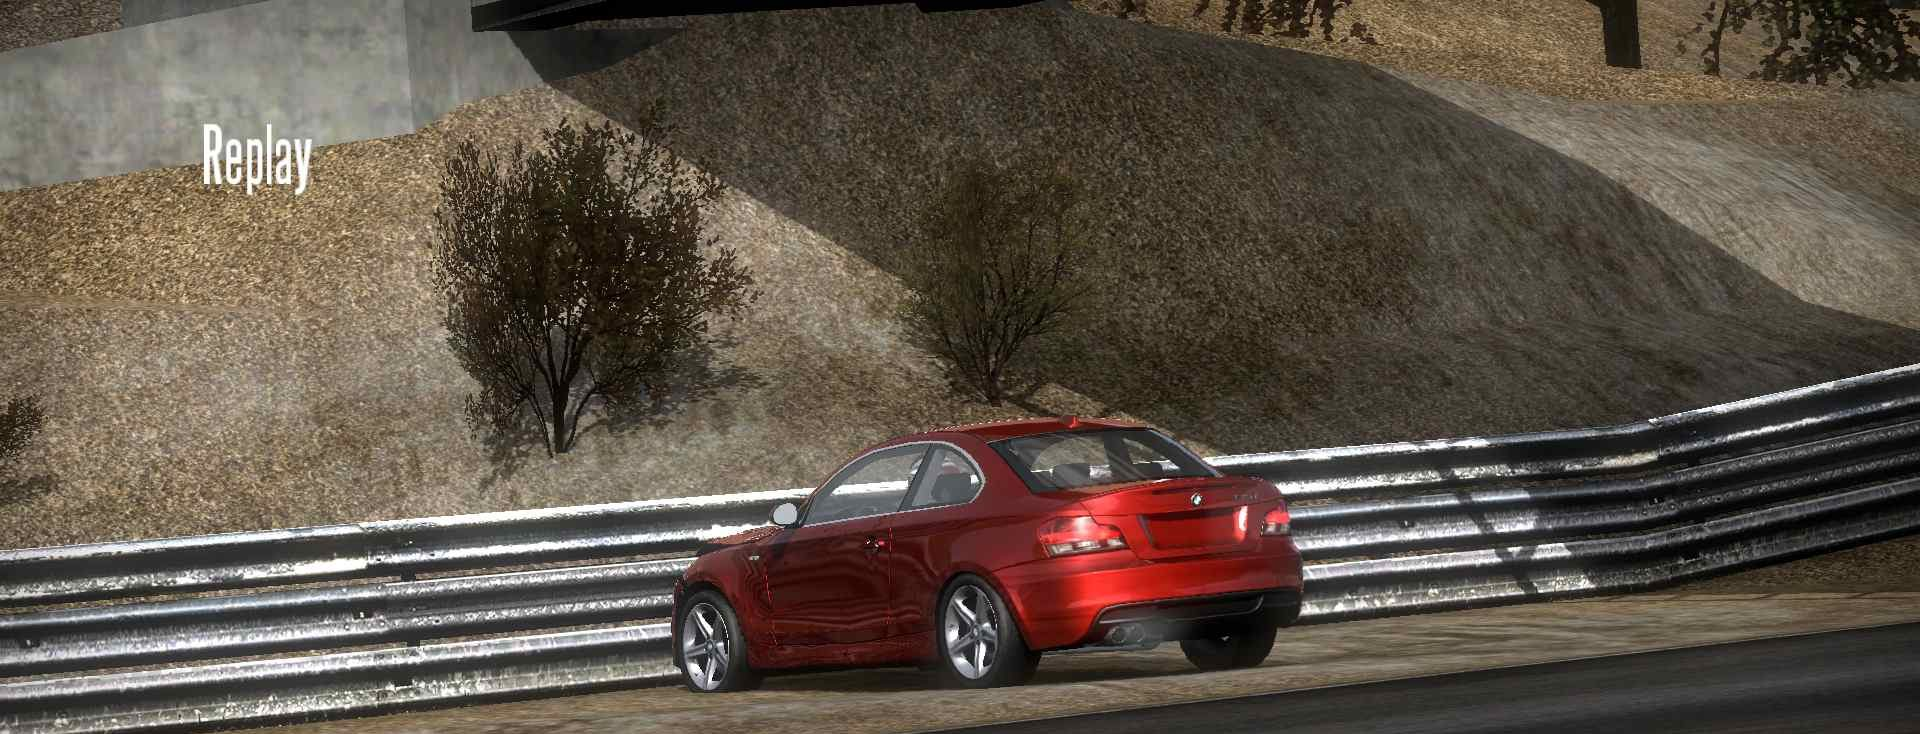 Need for Speed Shift highly compressed download for pc only in 1.83 GB